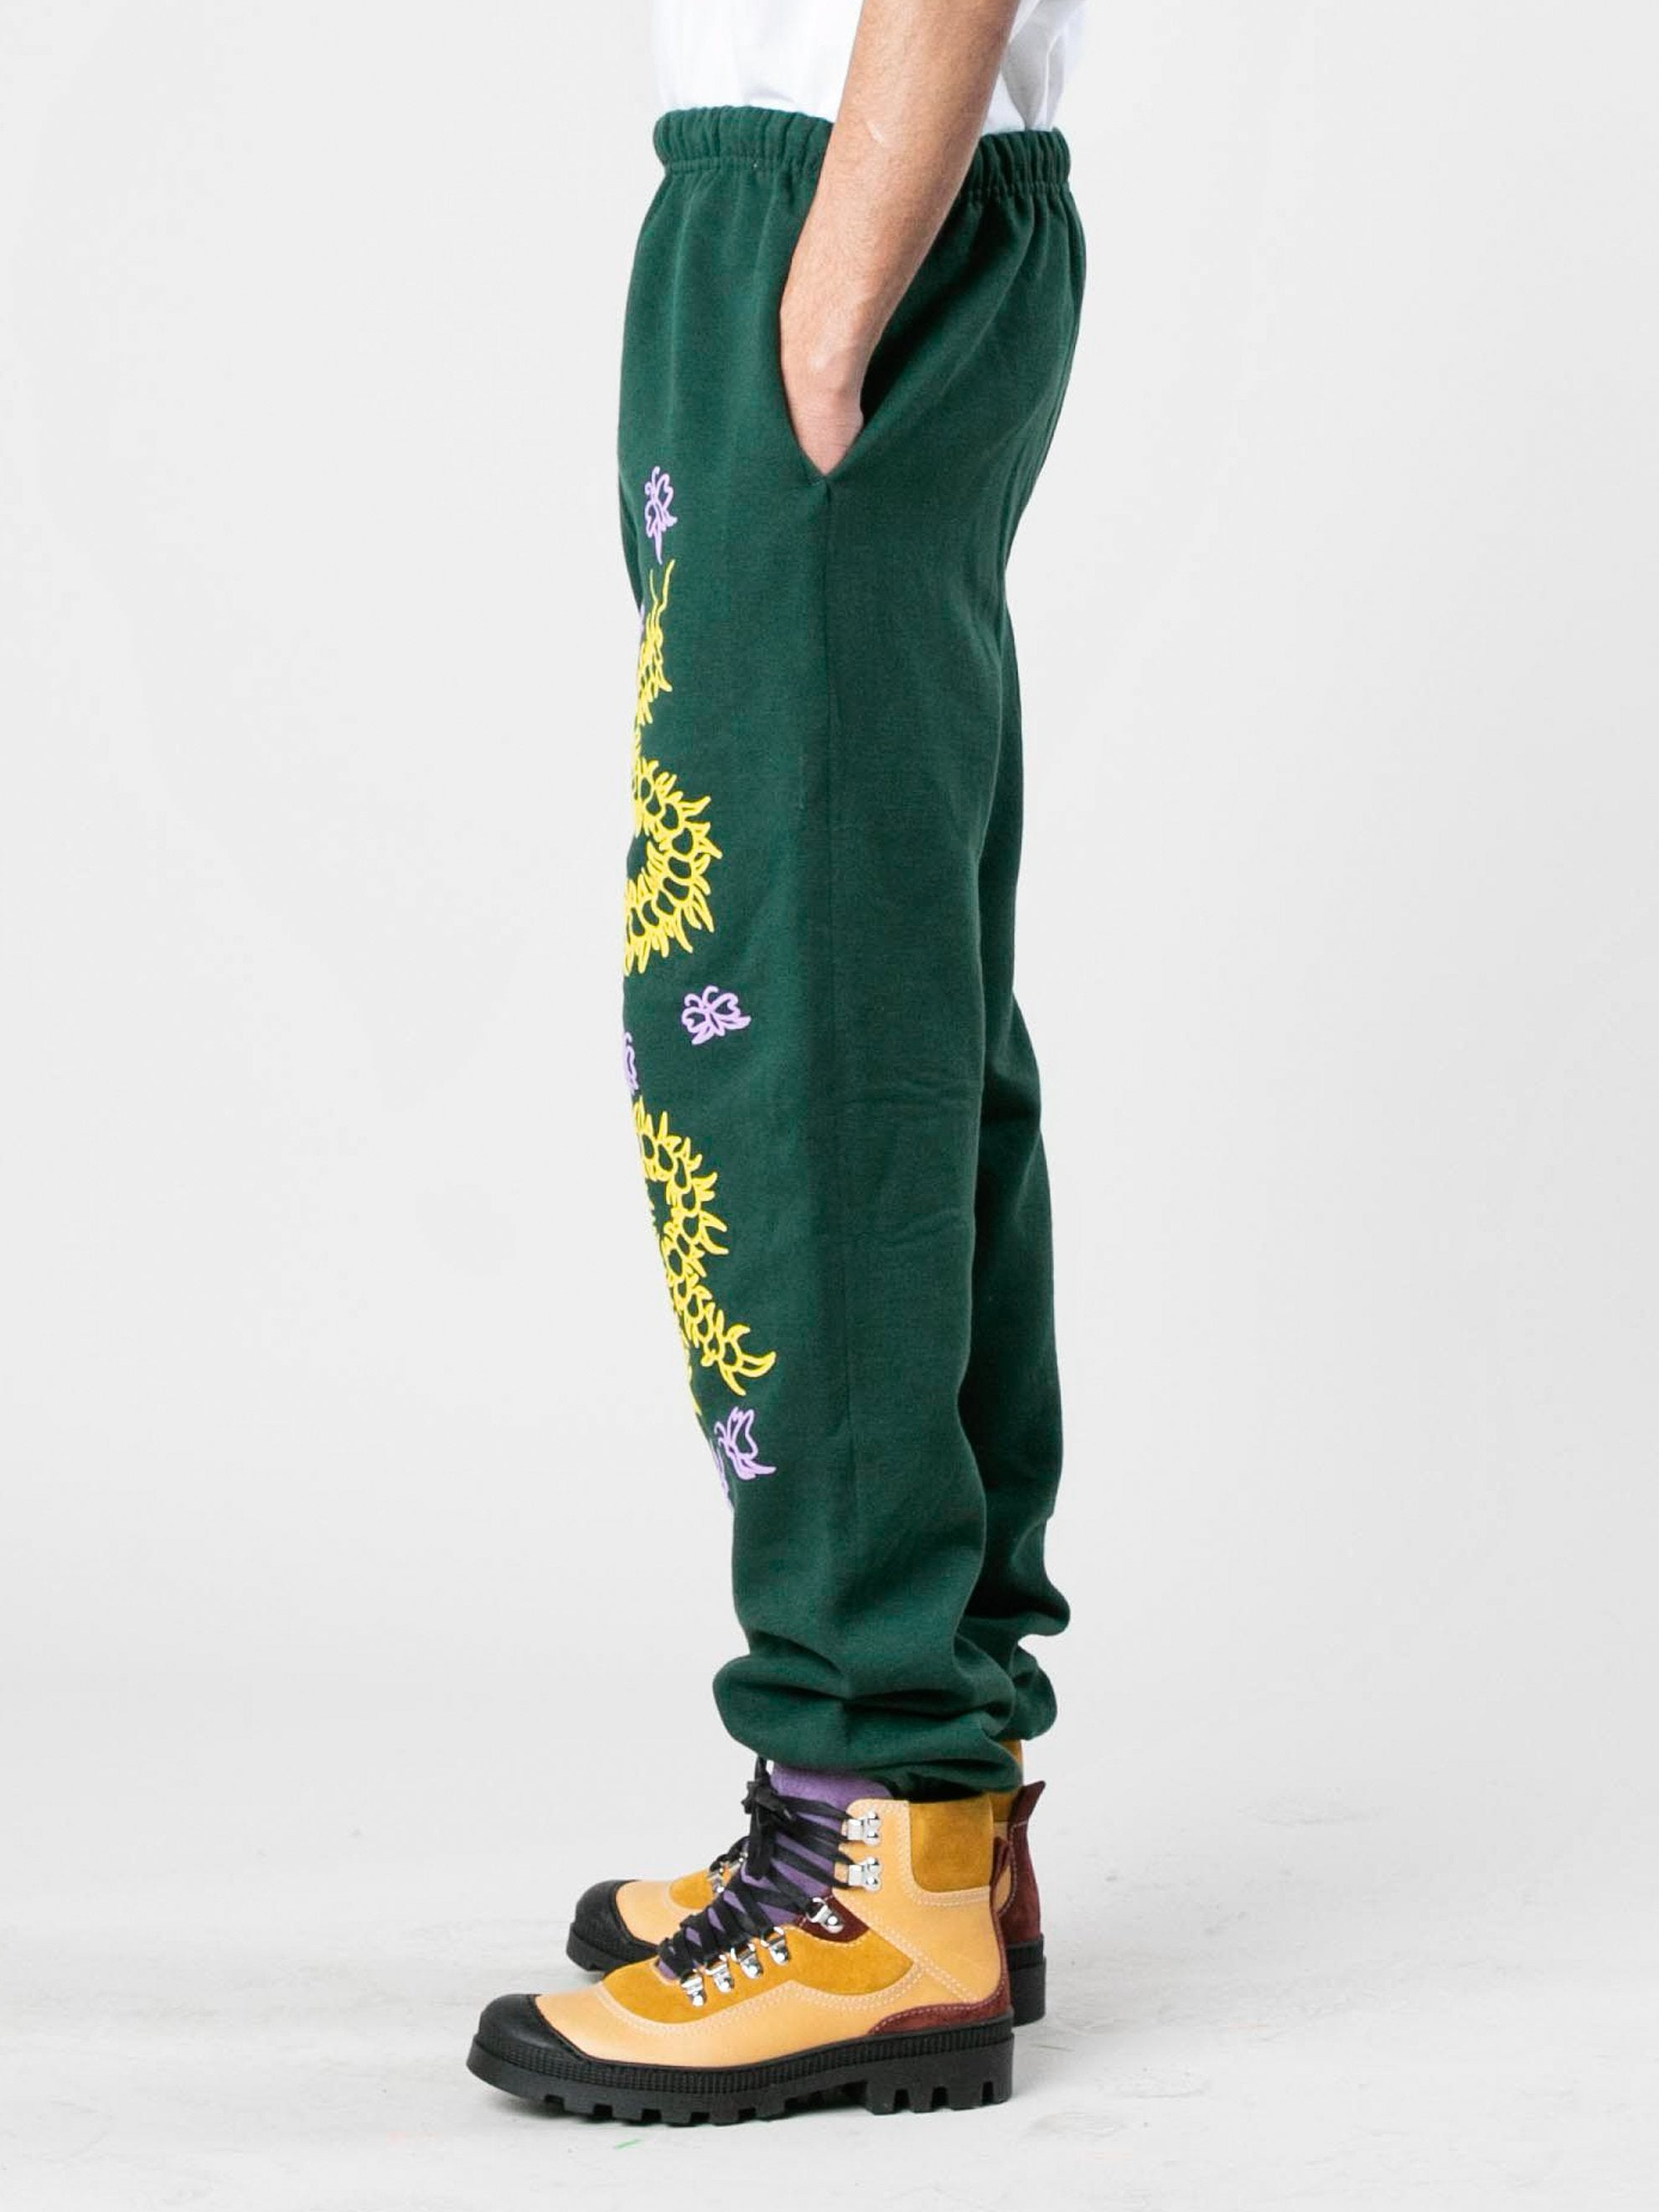 Green Caterpillar Puff Print Sweatpants 4